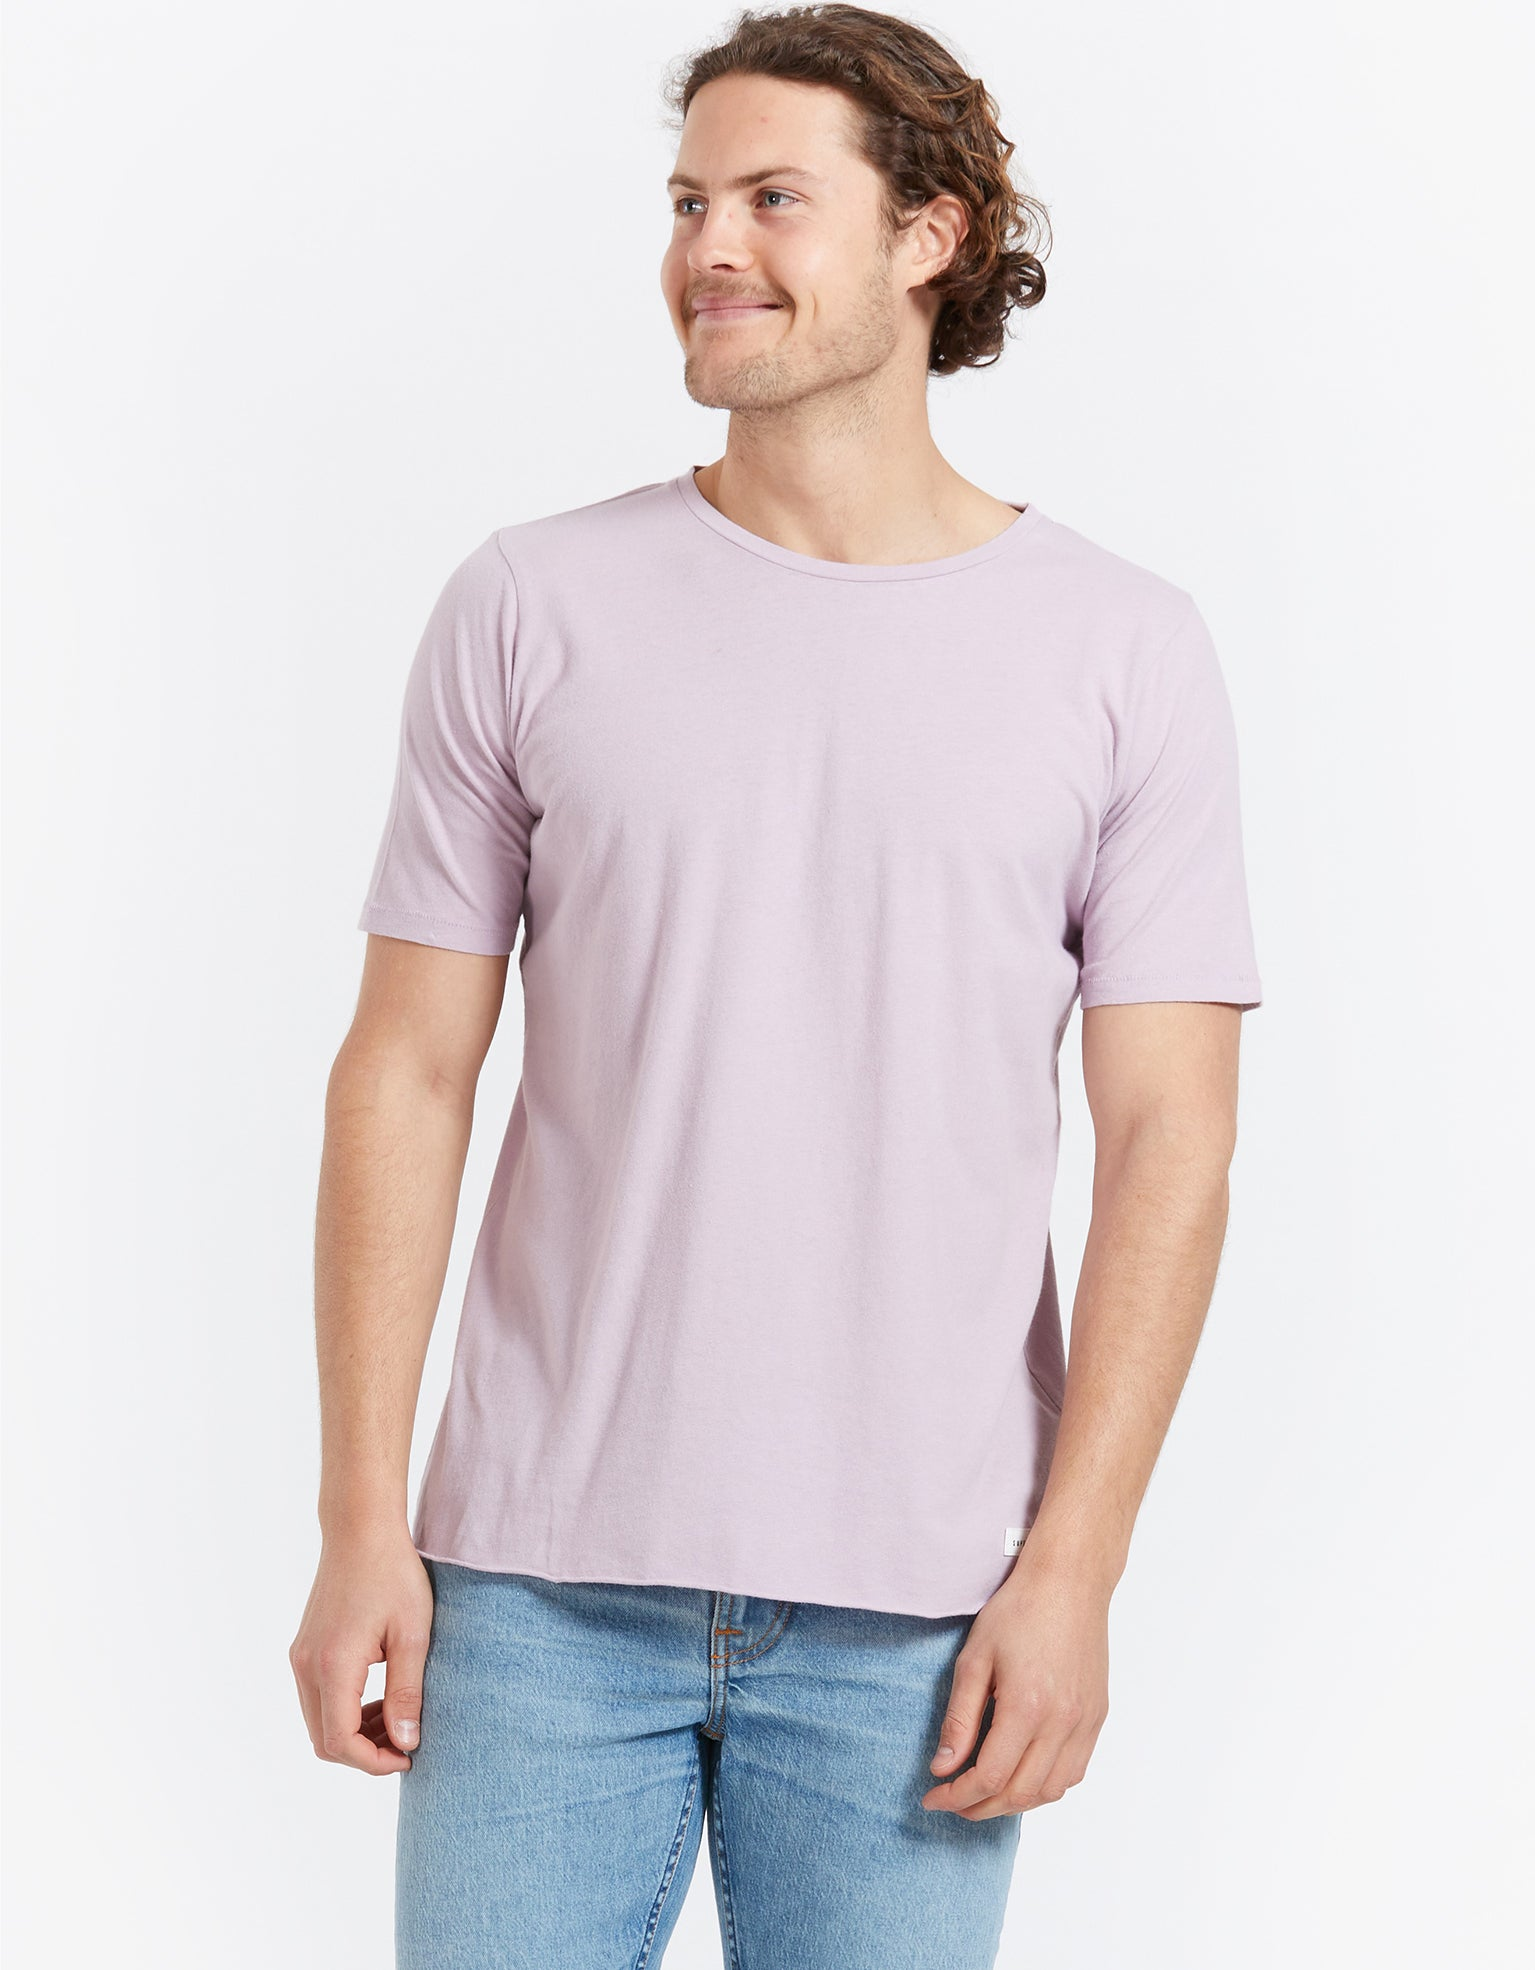 Mens Overdye Linen Tee - Washed Lilac